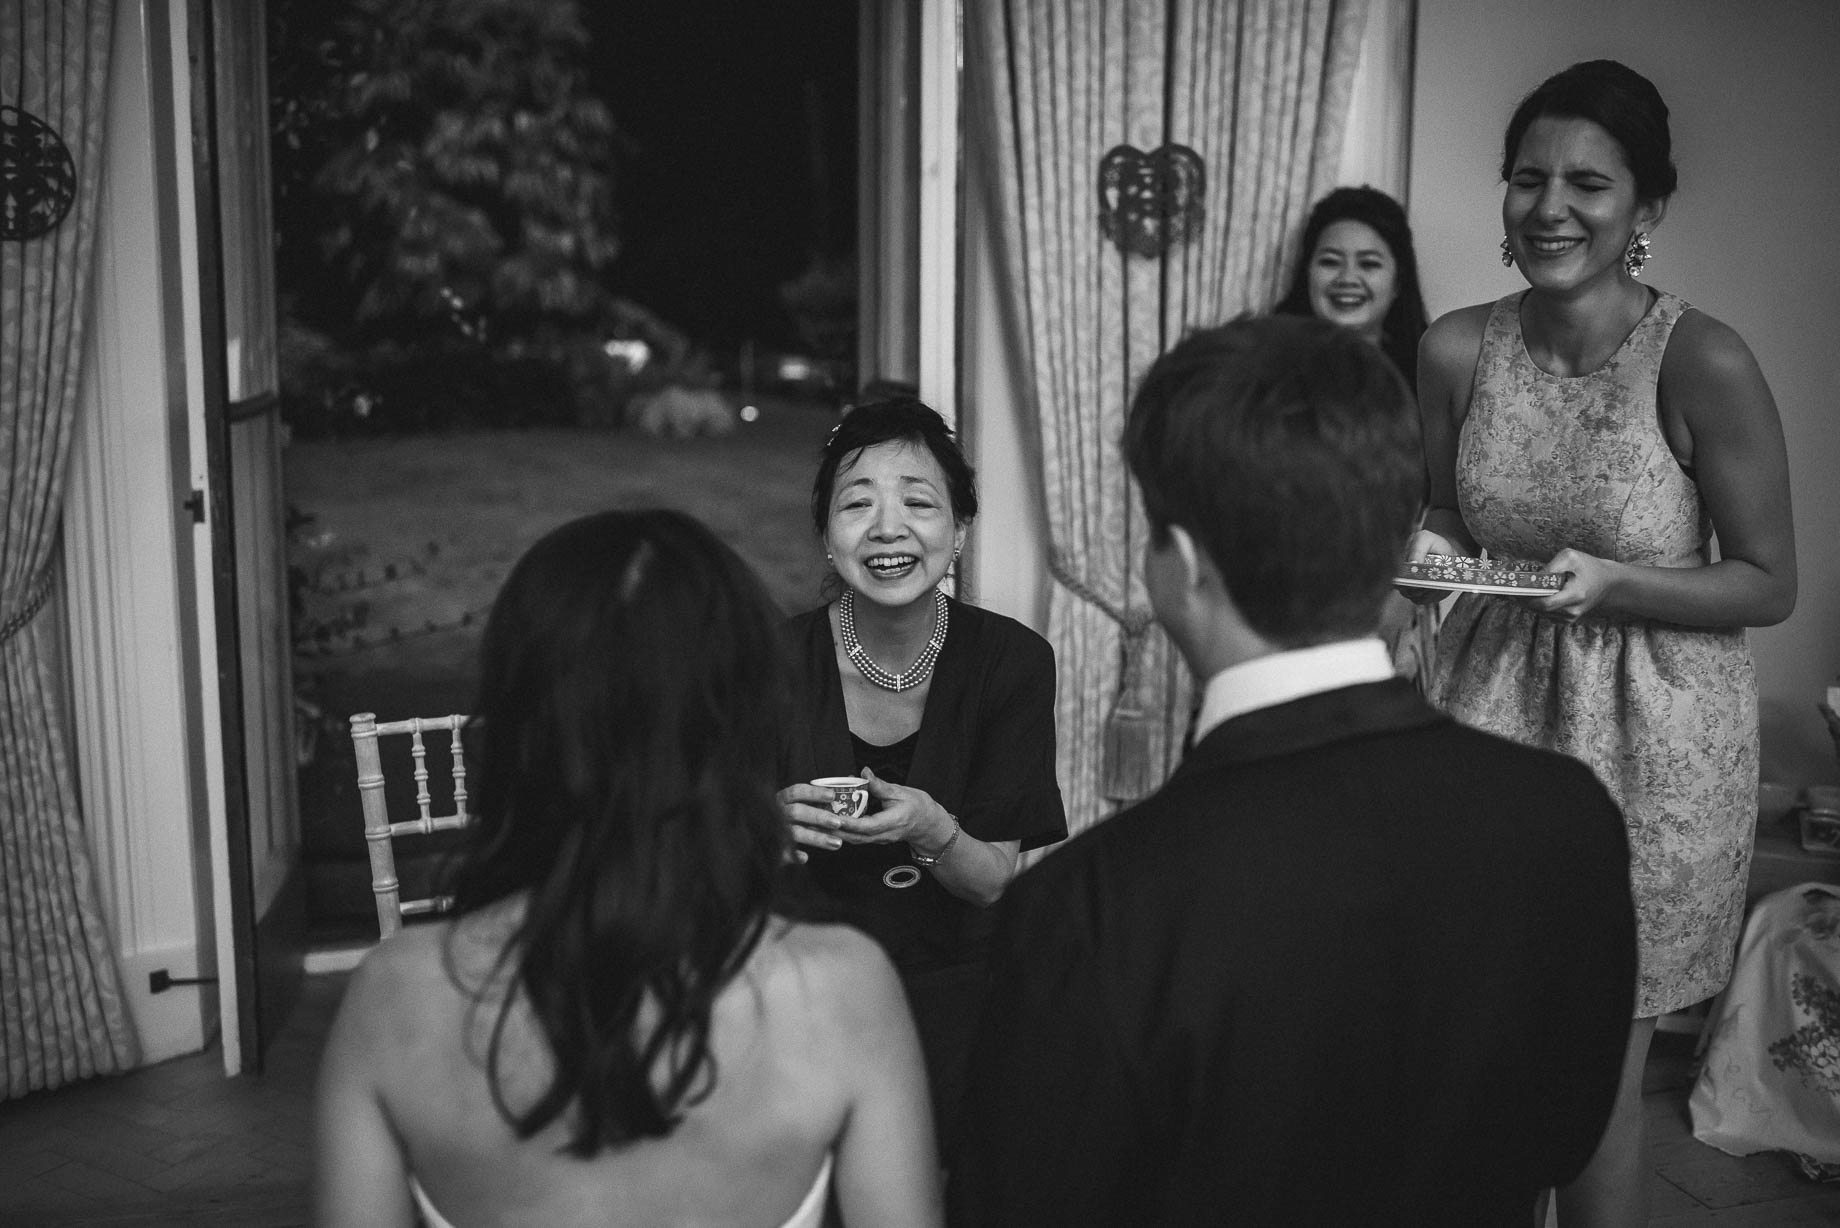 Kew Gardens wedding photography - Guy Collier Photography - Gloria and Frederik (158 of 173)